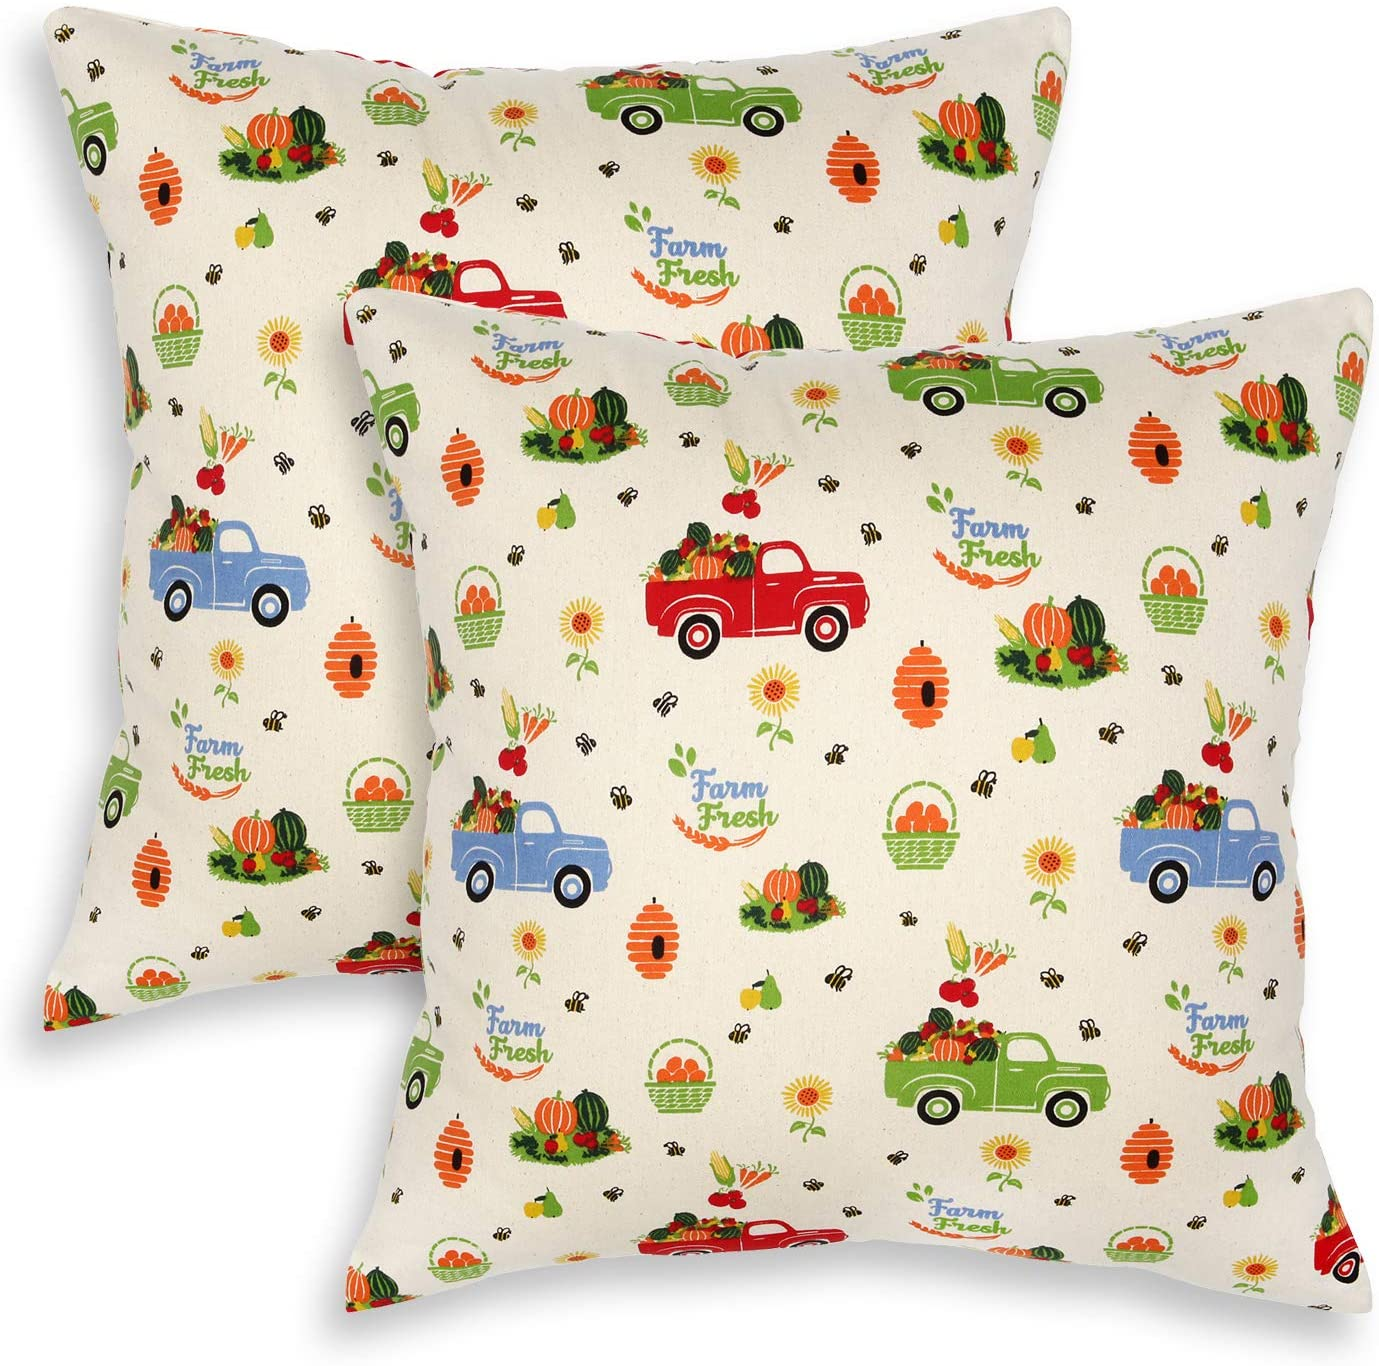 Cackleberry Home Farm Truck Harvest Cotton Decorative Square Throw Pillow Case Covers 18 x 18 Inches, Set of 2